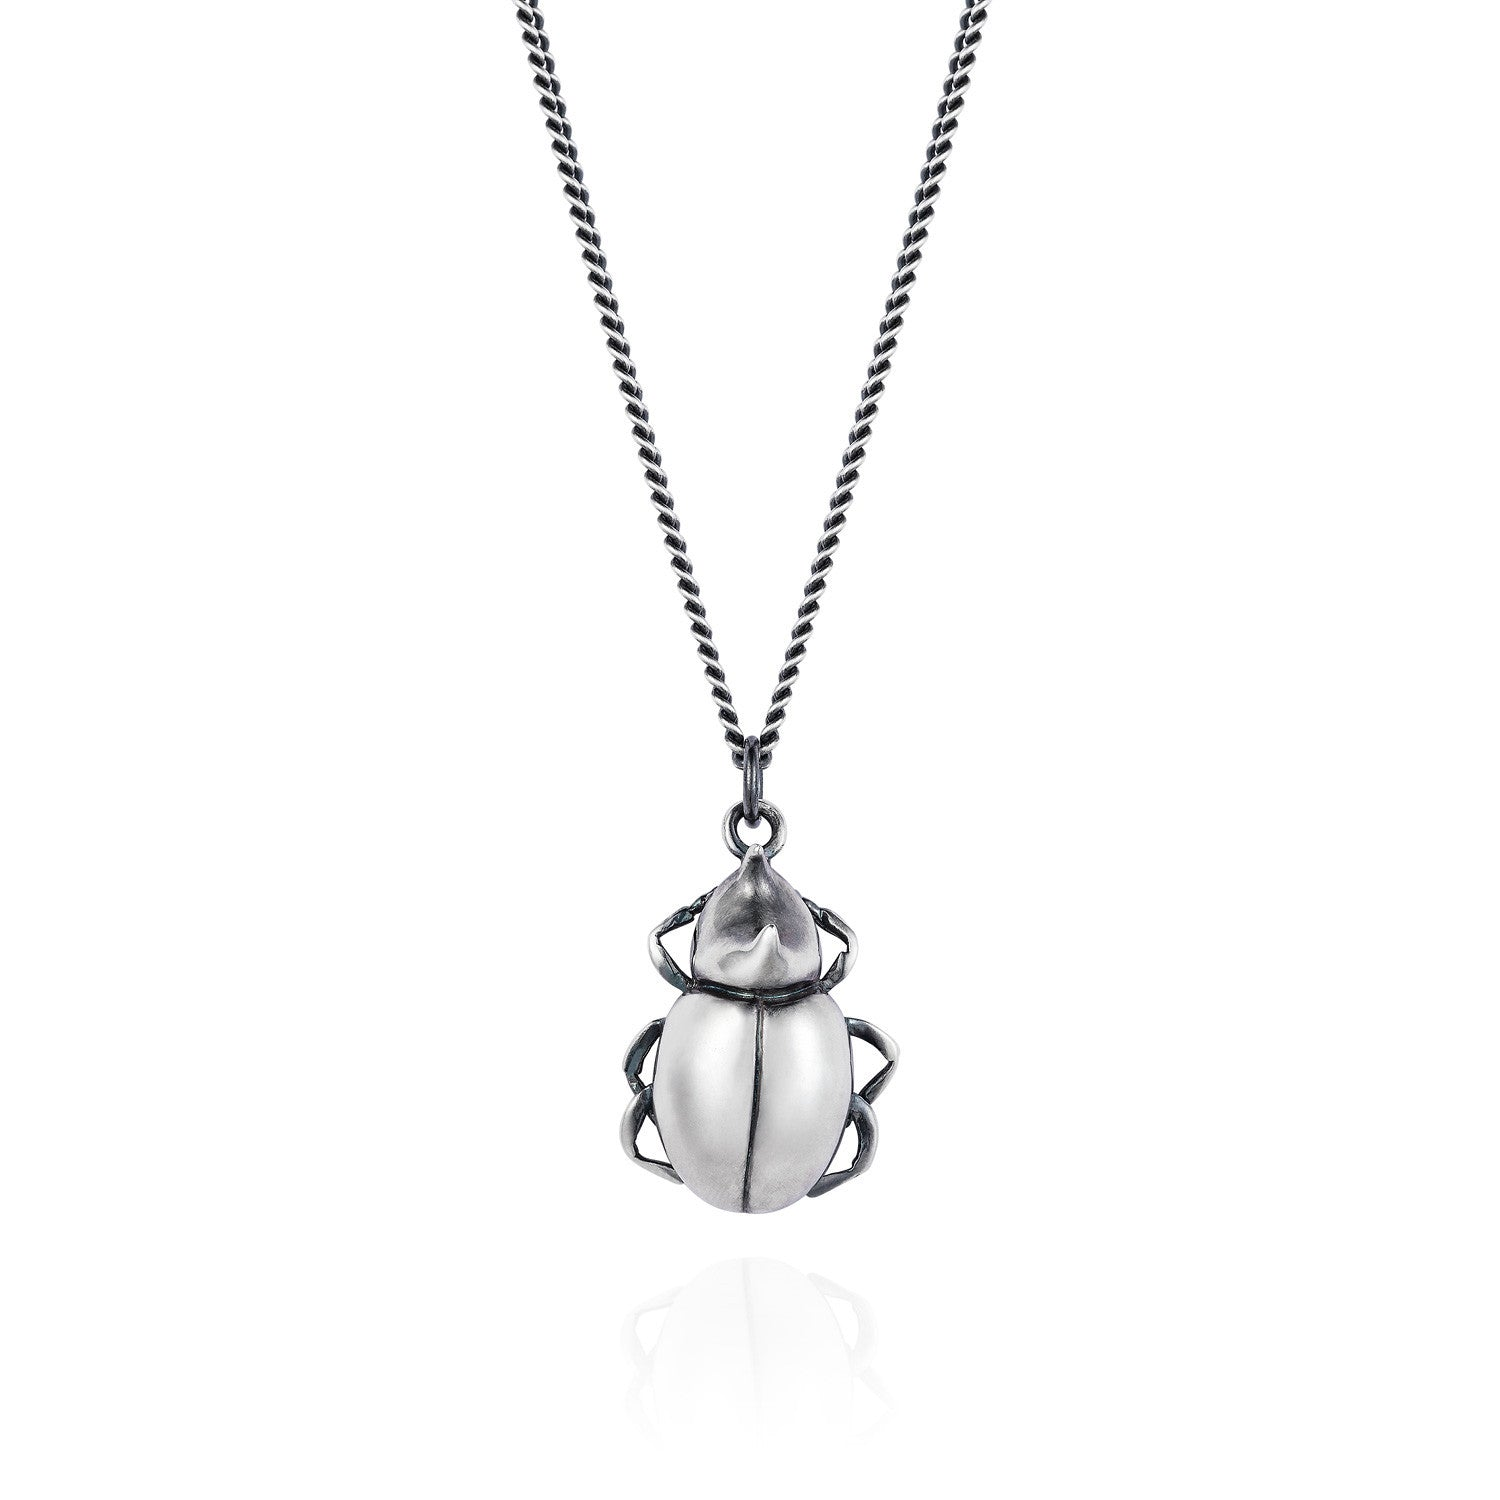 Dark Silver Rhino Beetle Necklace